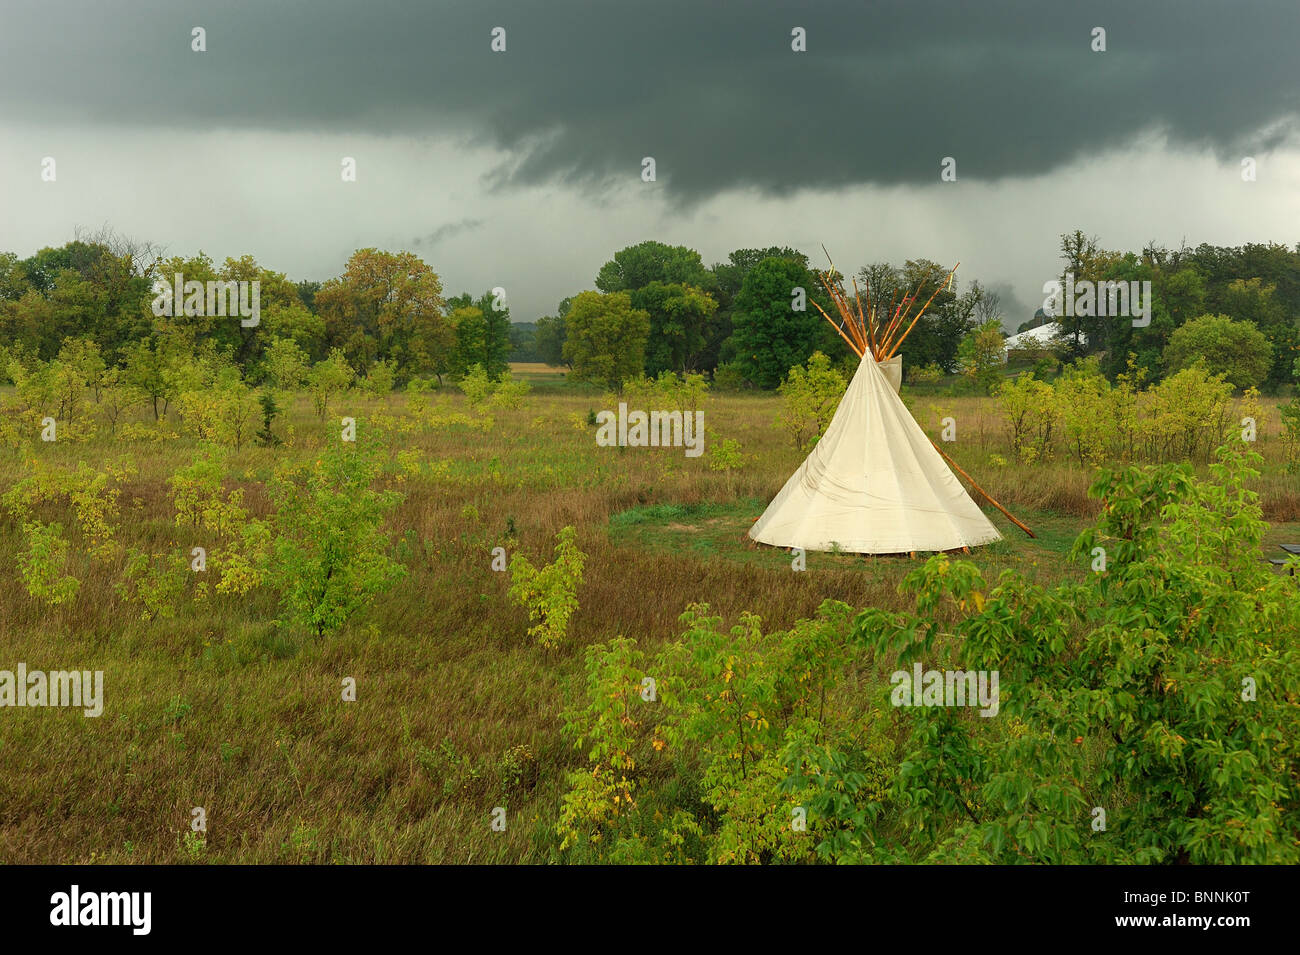 Tipi american indian tent Campground Upper Sioux Agency State Park Granite Falls Minnesota USA America United States - Stock Image